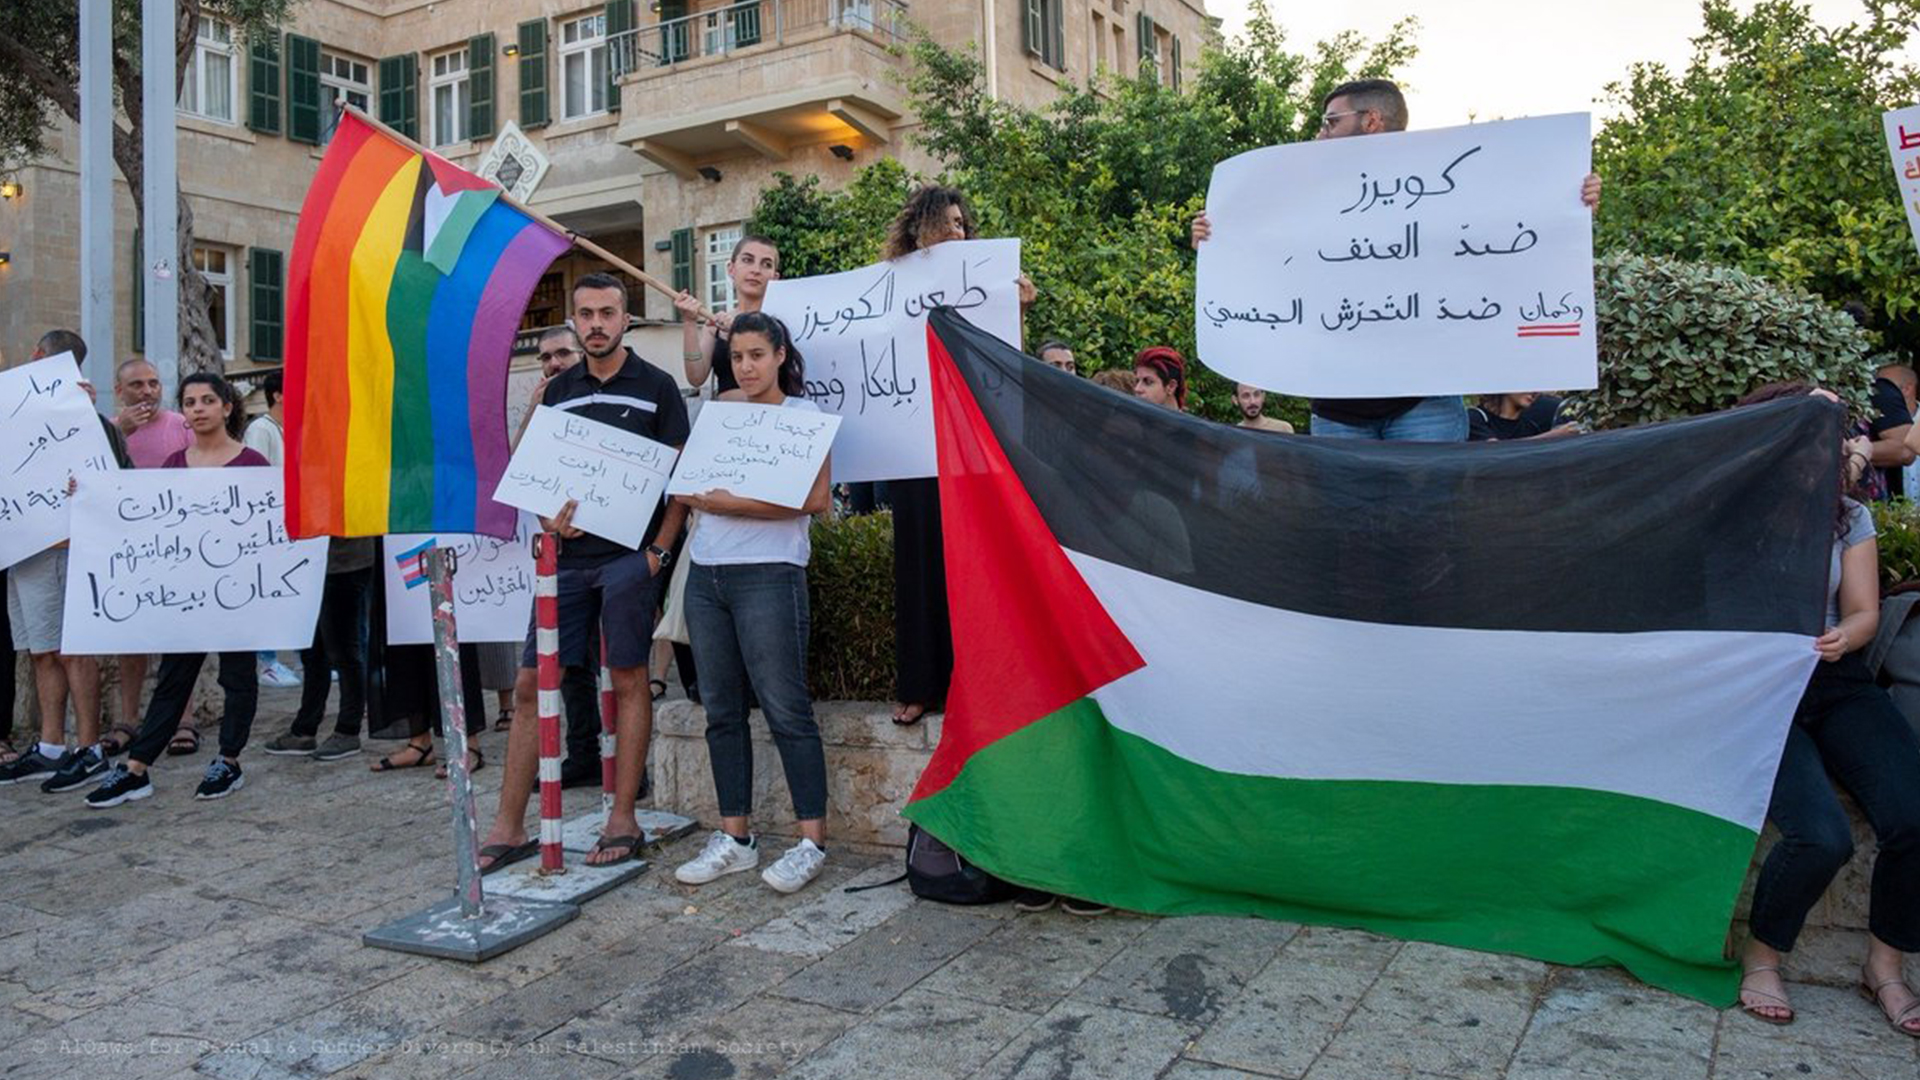 Palestinian Authorities ban LGBT+ groups from activities in the West Bank